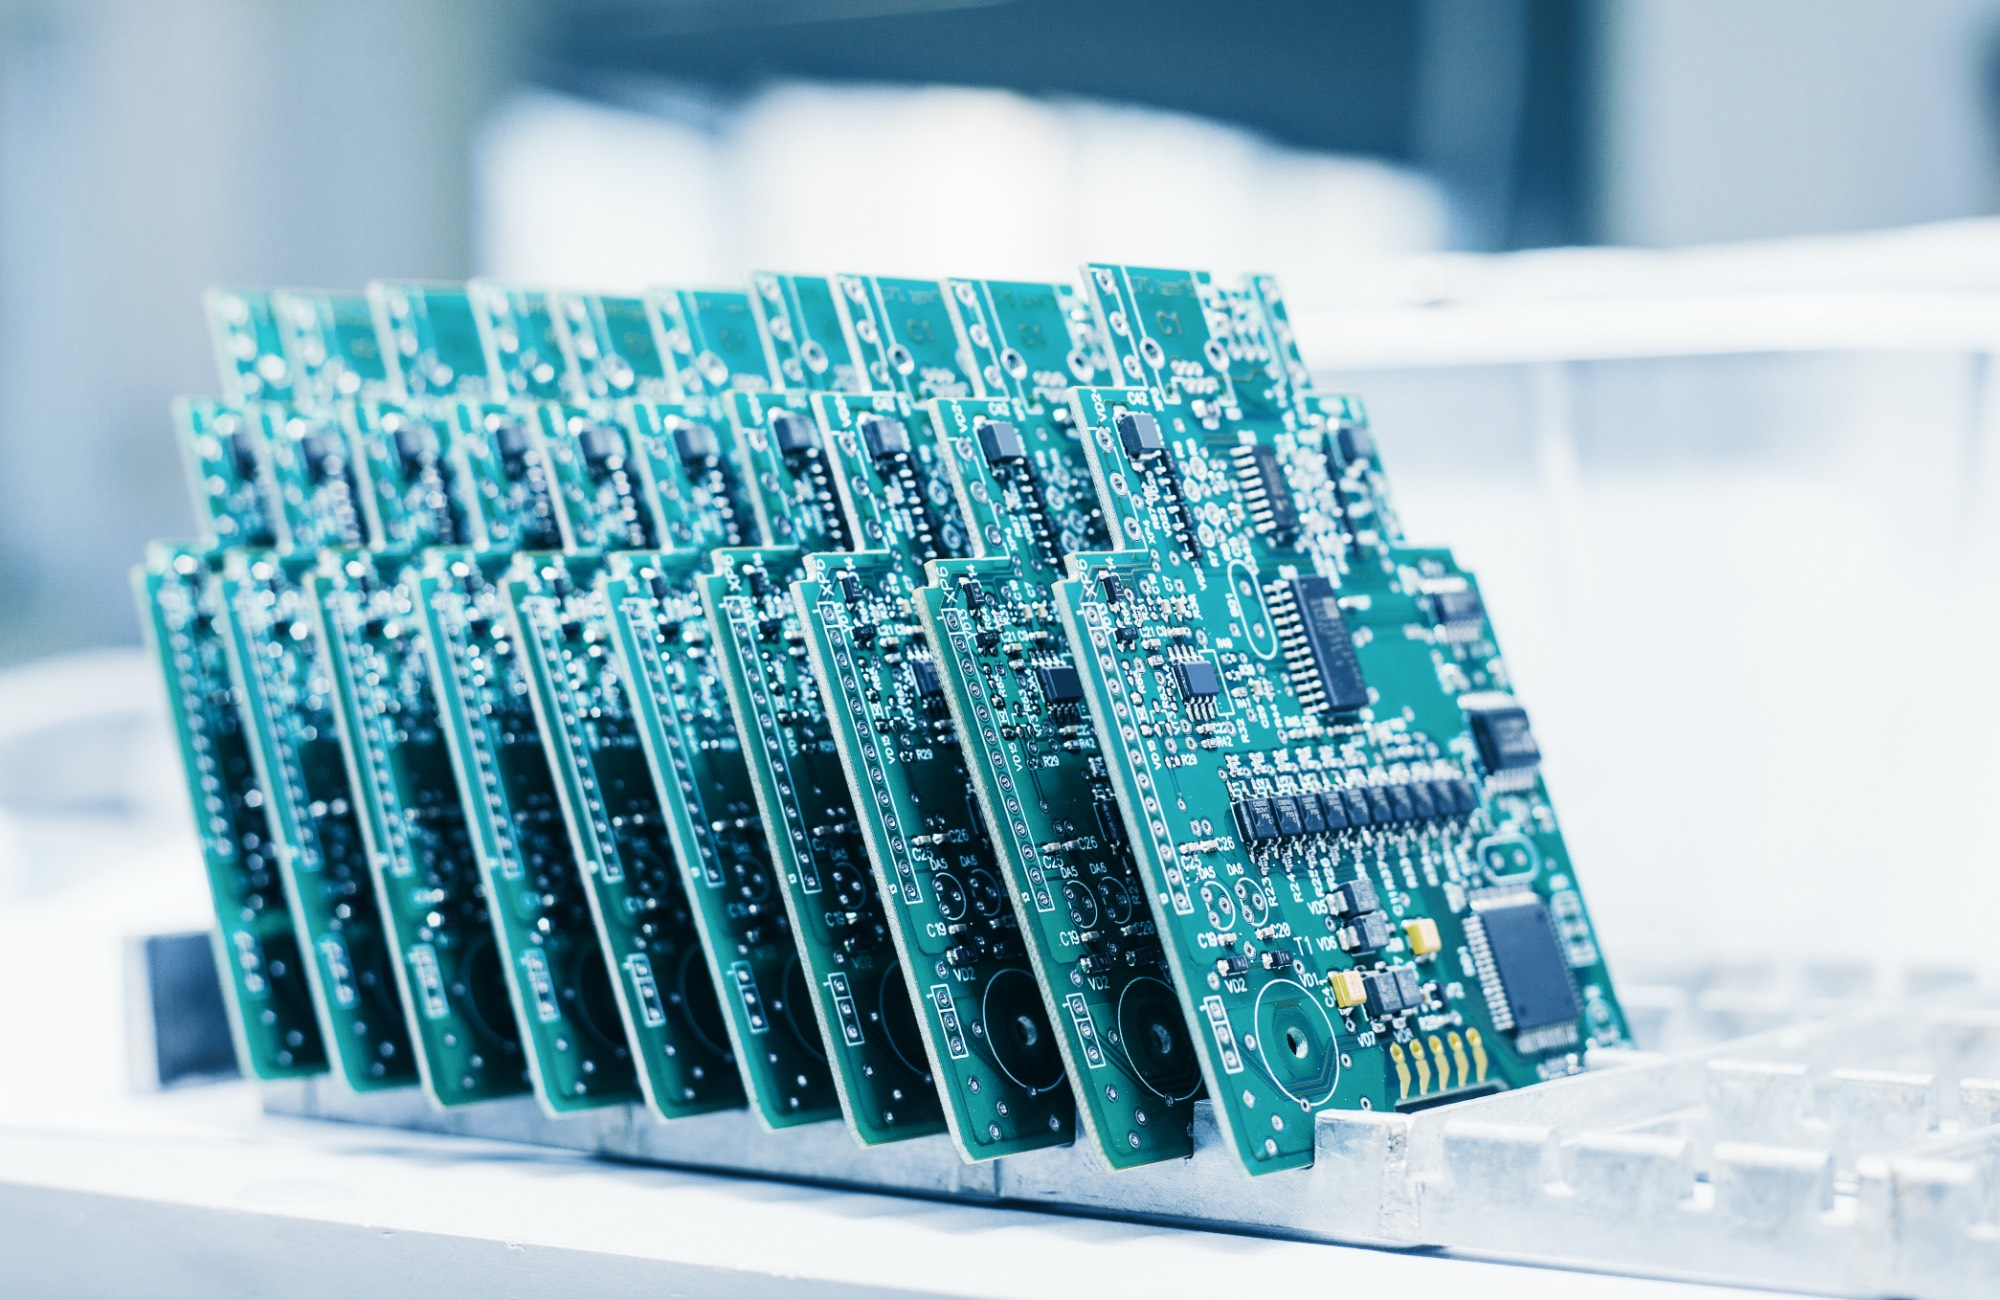 Series of Circuit Boards in Production